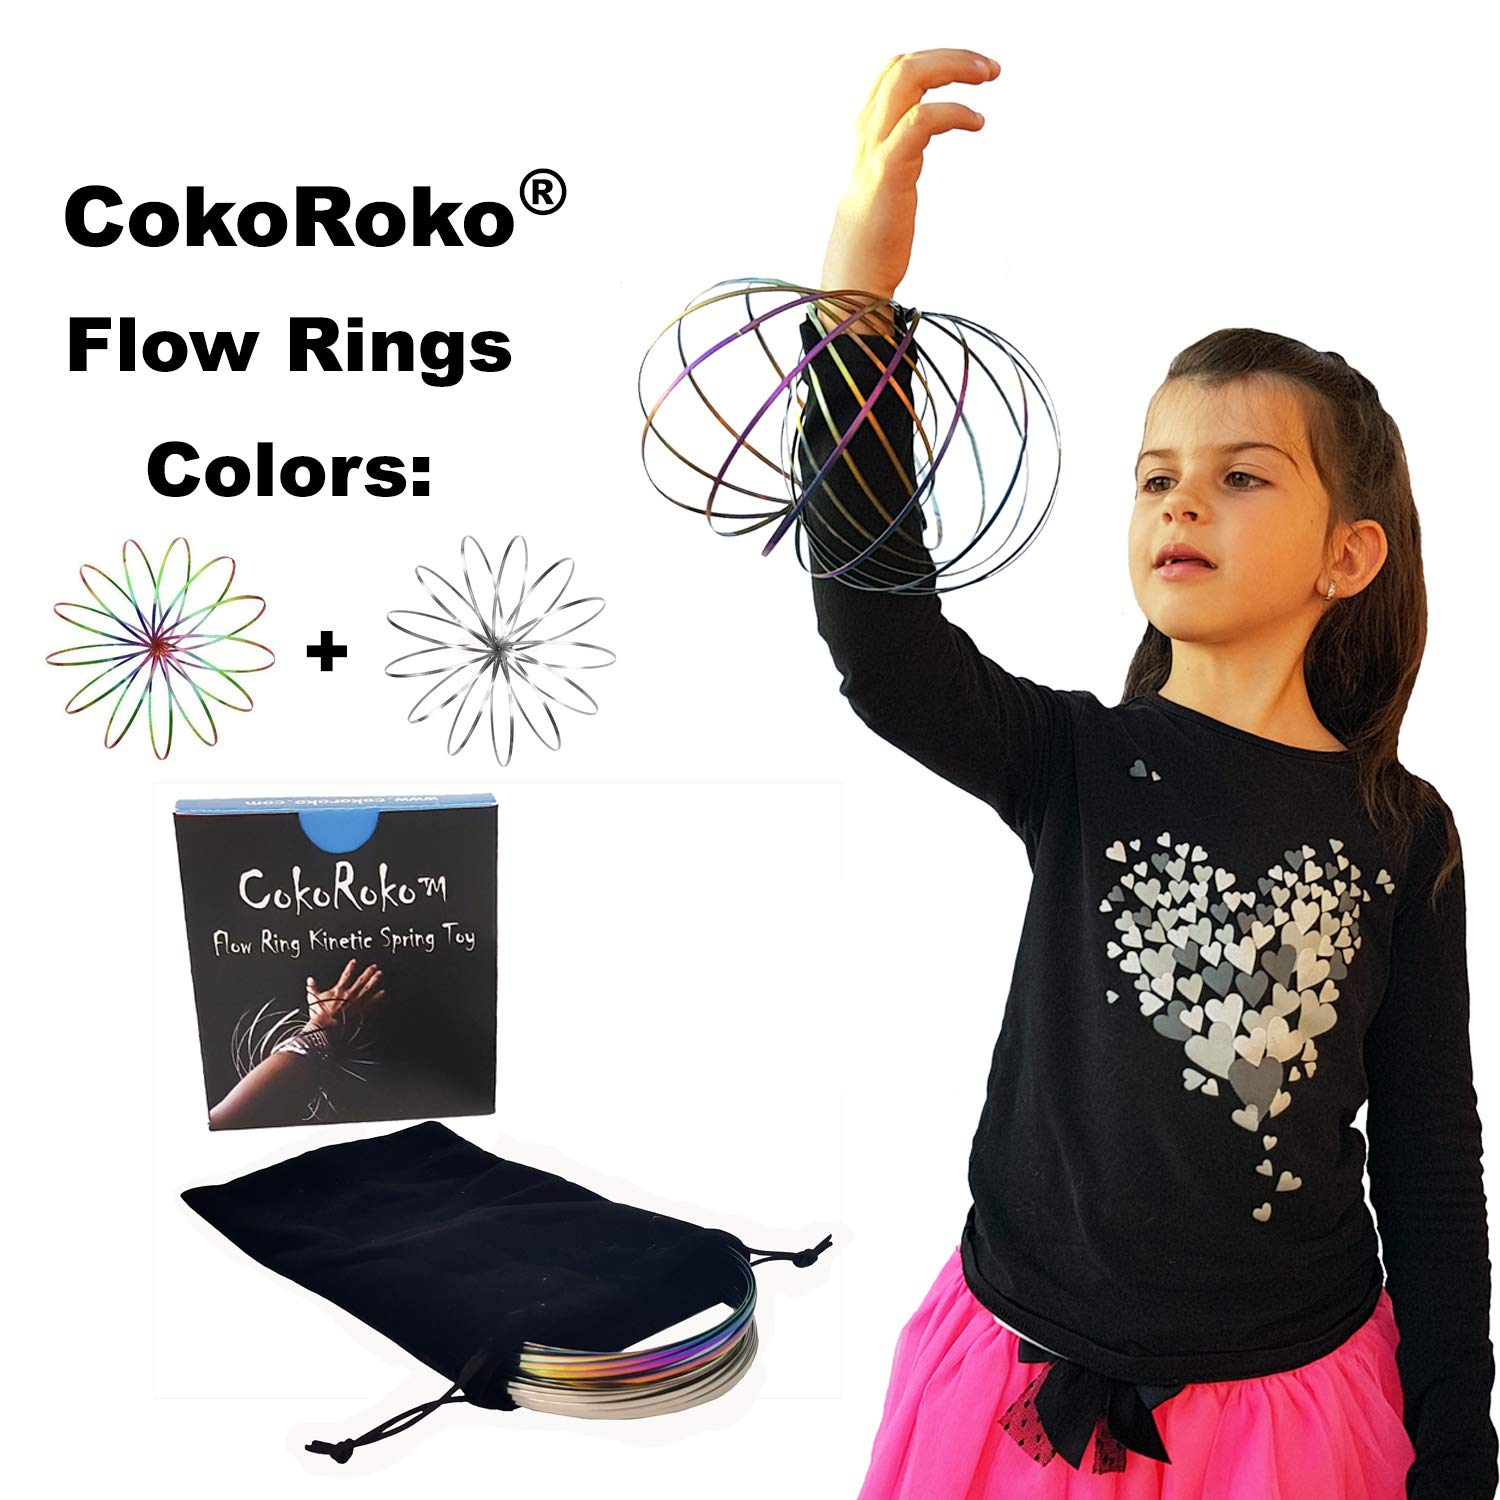 CokoRoko Flow Ring 3D Kinetic Spring Toy Sculpture Ring Game Toy Kids Adults. Magic Ring Perfect Outdoor Games Funny Beach Toys (Silver&Hologpahic)